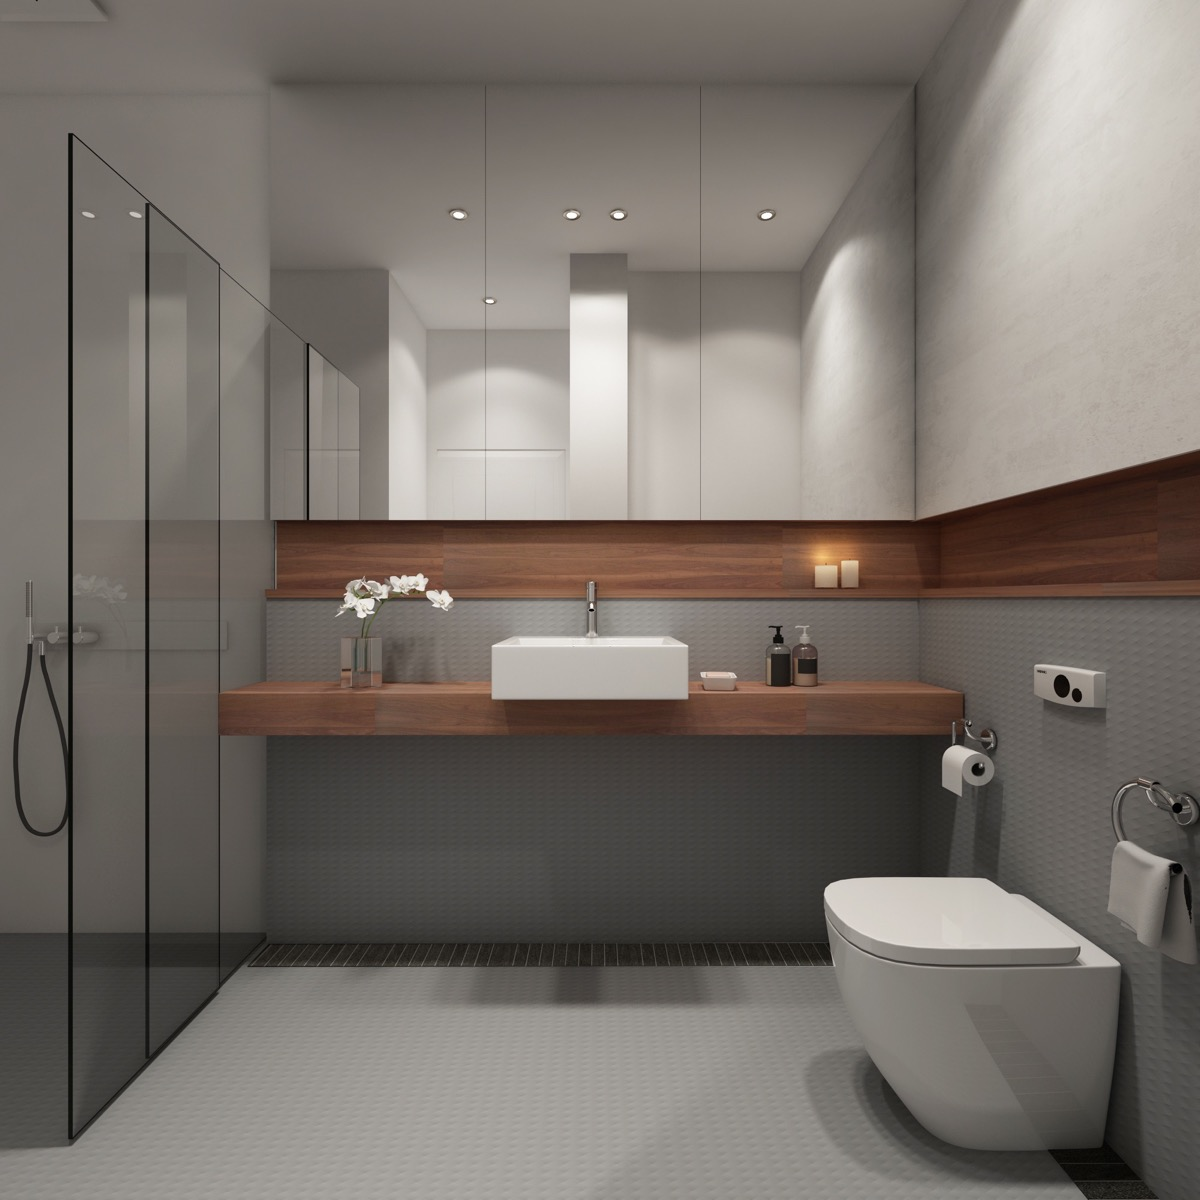 36 Modern Grey & White Bathrooms That Relax Mind Body & Soul images 23